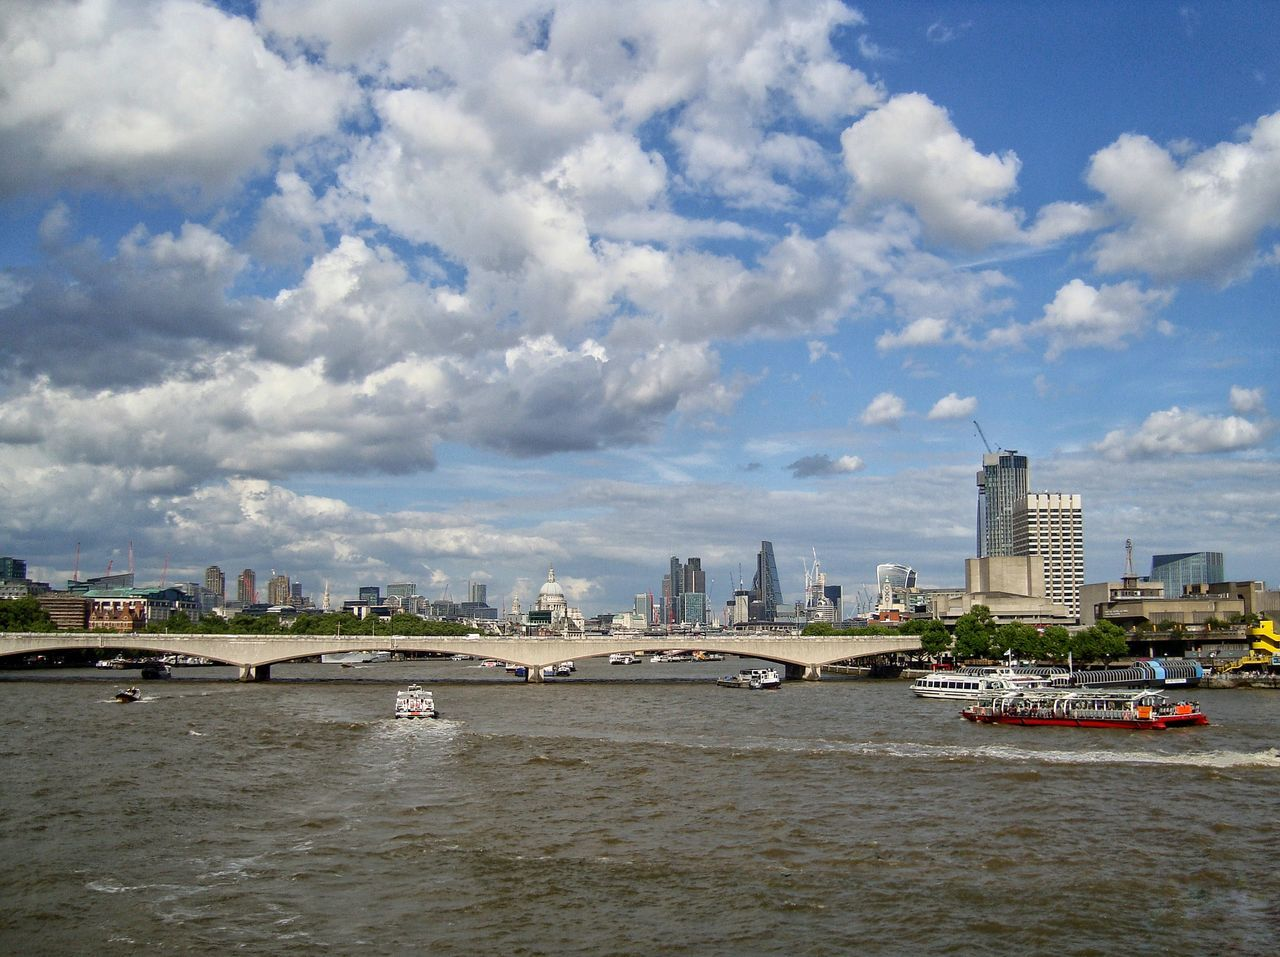 A view of the London skyline and the river Thames Architecture Built Structure City City Of London City Of London Tourism Cityscape Cloud - Sky London London Skyline LONDON❤ Modern River River Thames River Thames Skyline Sky Skyscraper St Paul's Cathedral St Pauls Cathedral Thames Thames River Tourism Tourist Attraction  Tourist Destination Urban Skyline Water